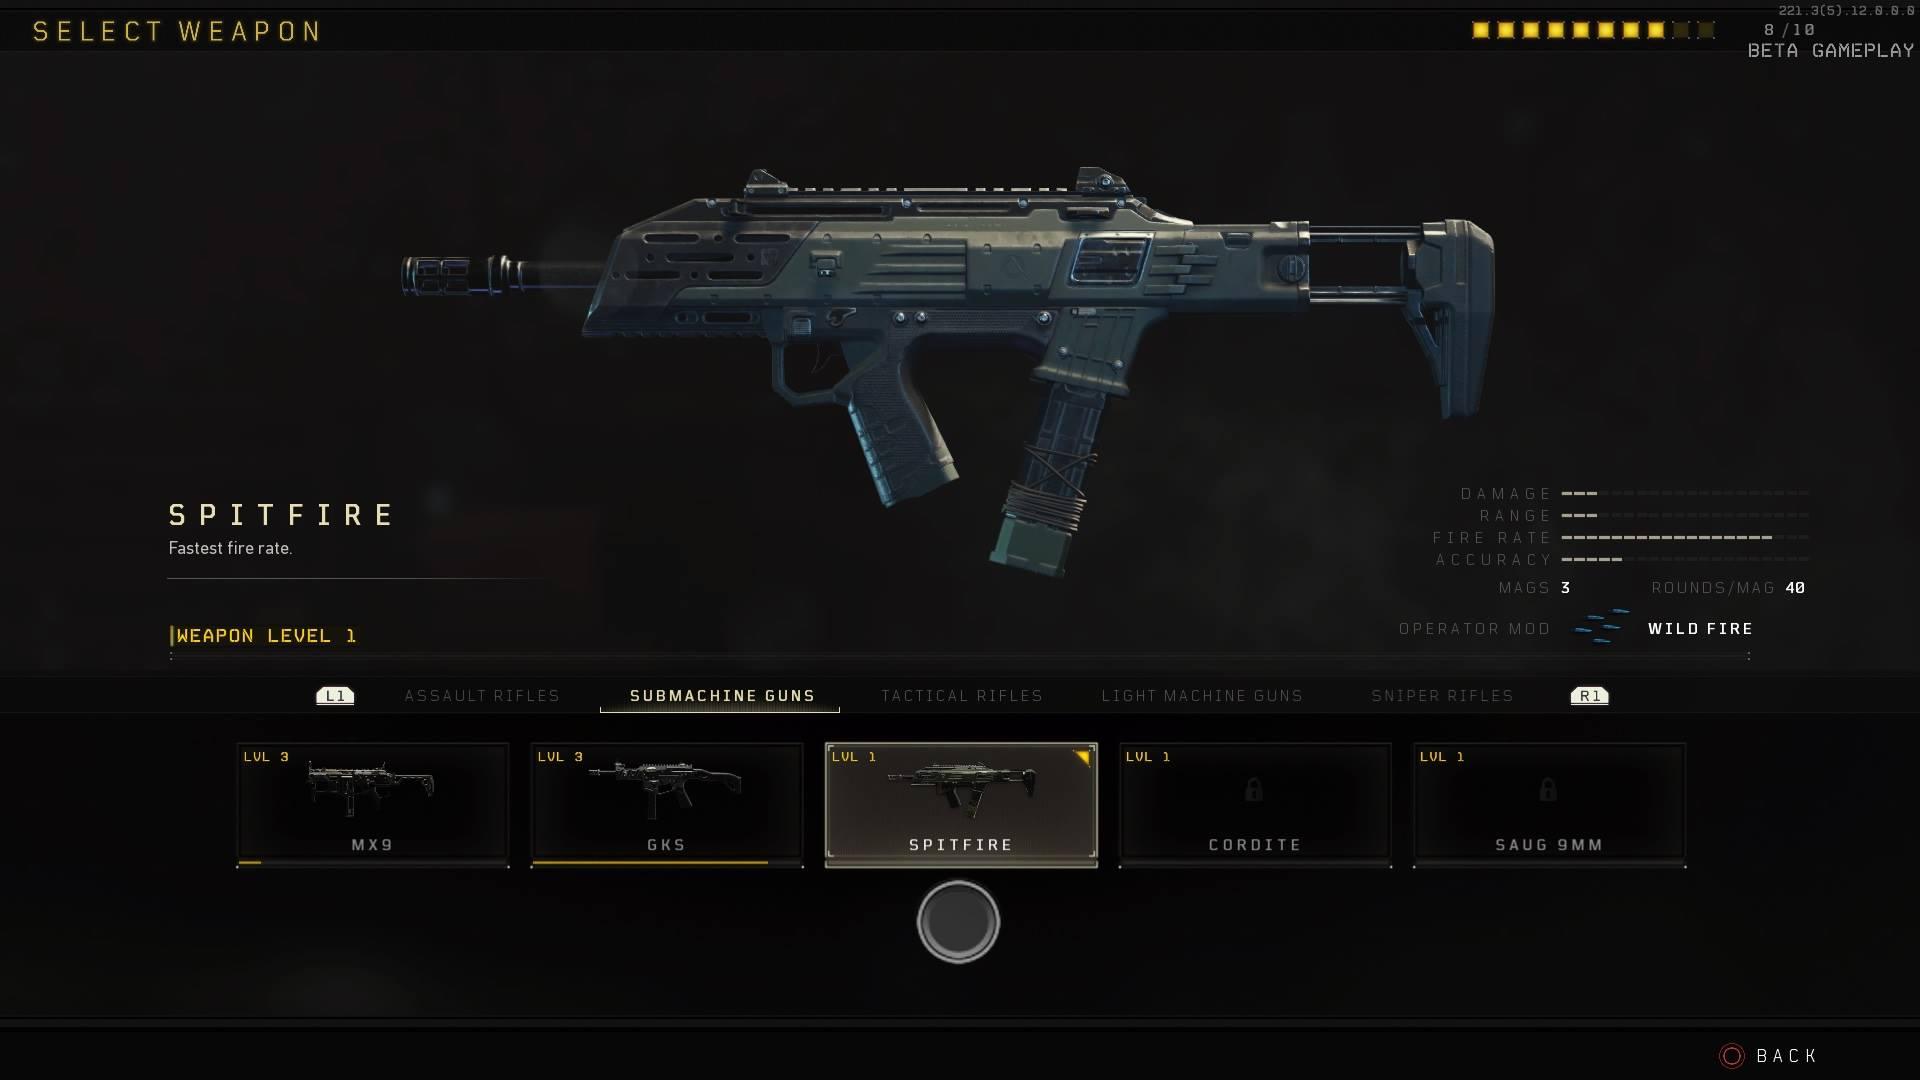 All of the weapons in the Call of Duty: Black Ops 4 private